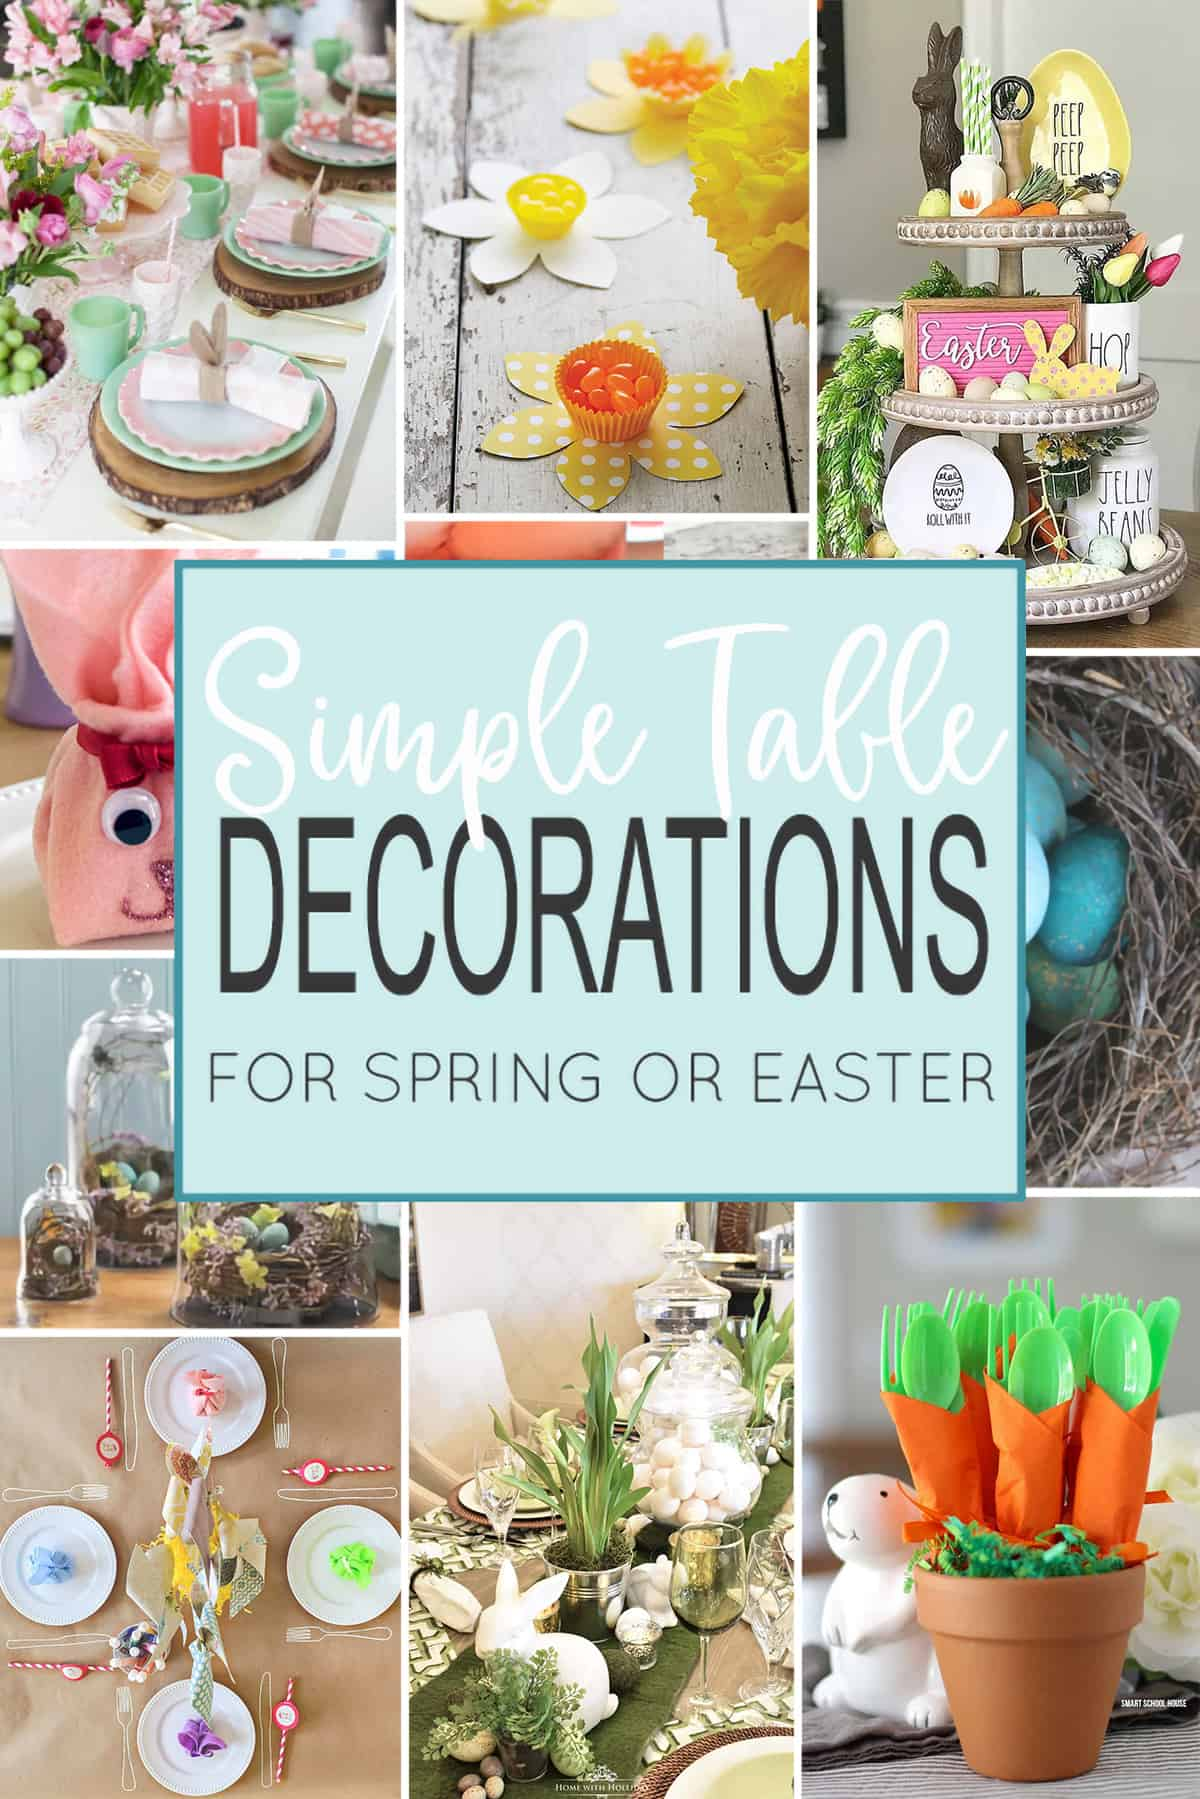 Easter crafts and decorations for the table